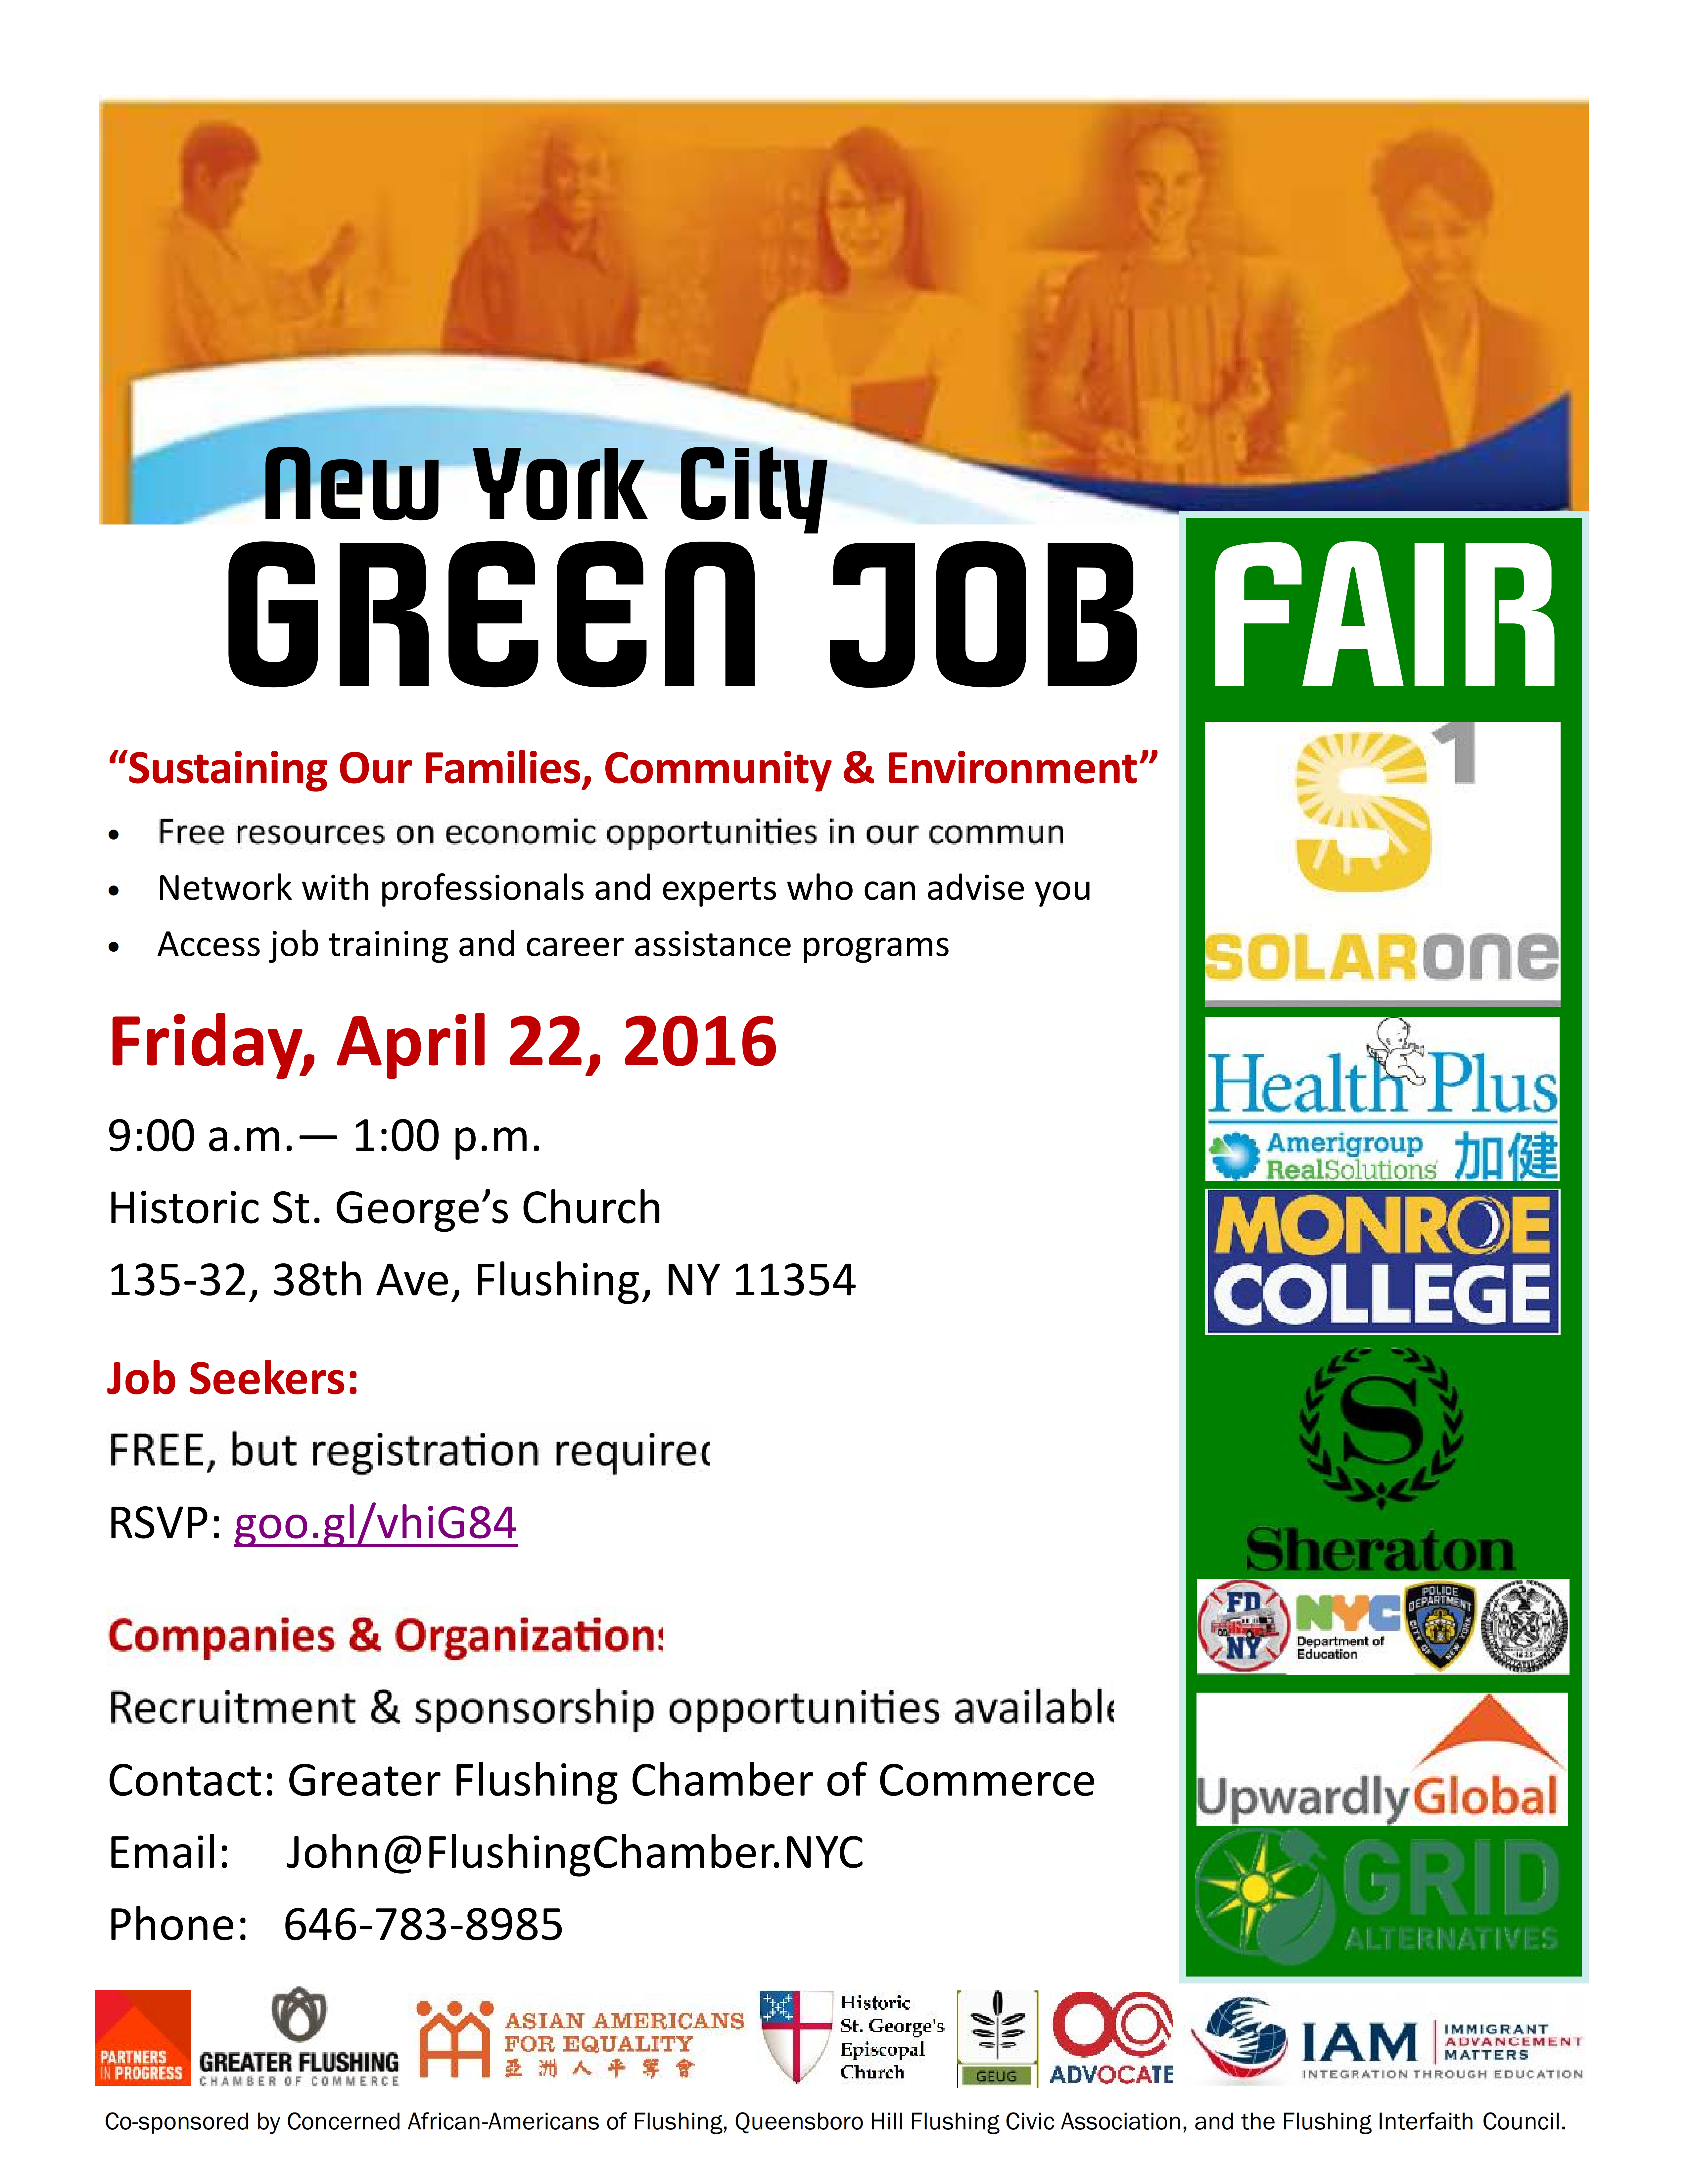 https://qns.com/wp-content/uploads/2016/04/Flyer-JobFair-2016_001.png